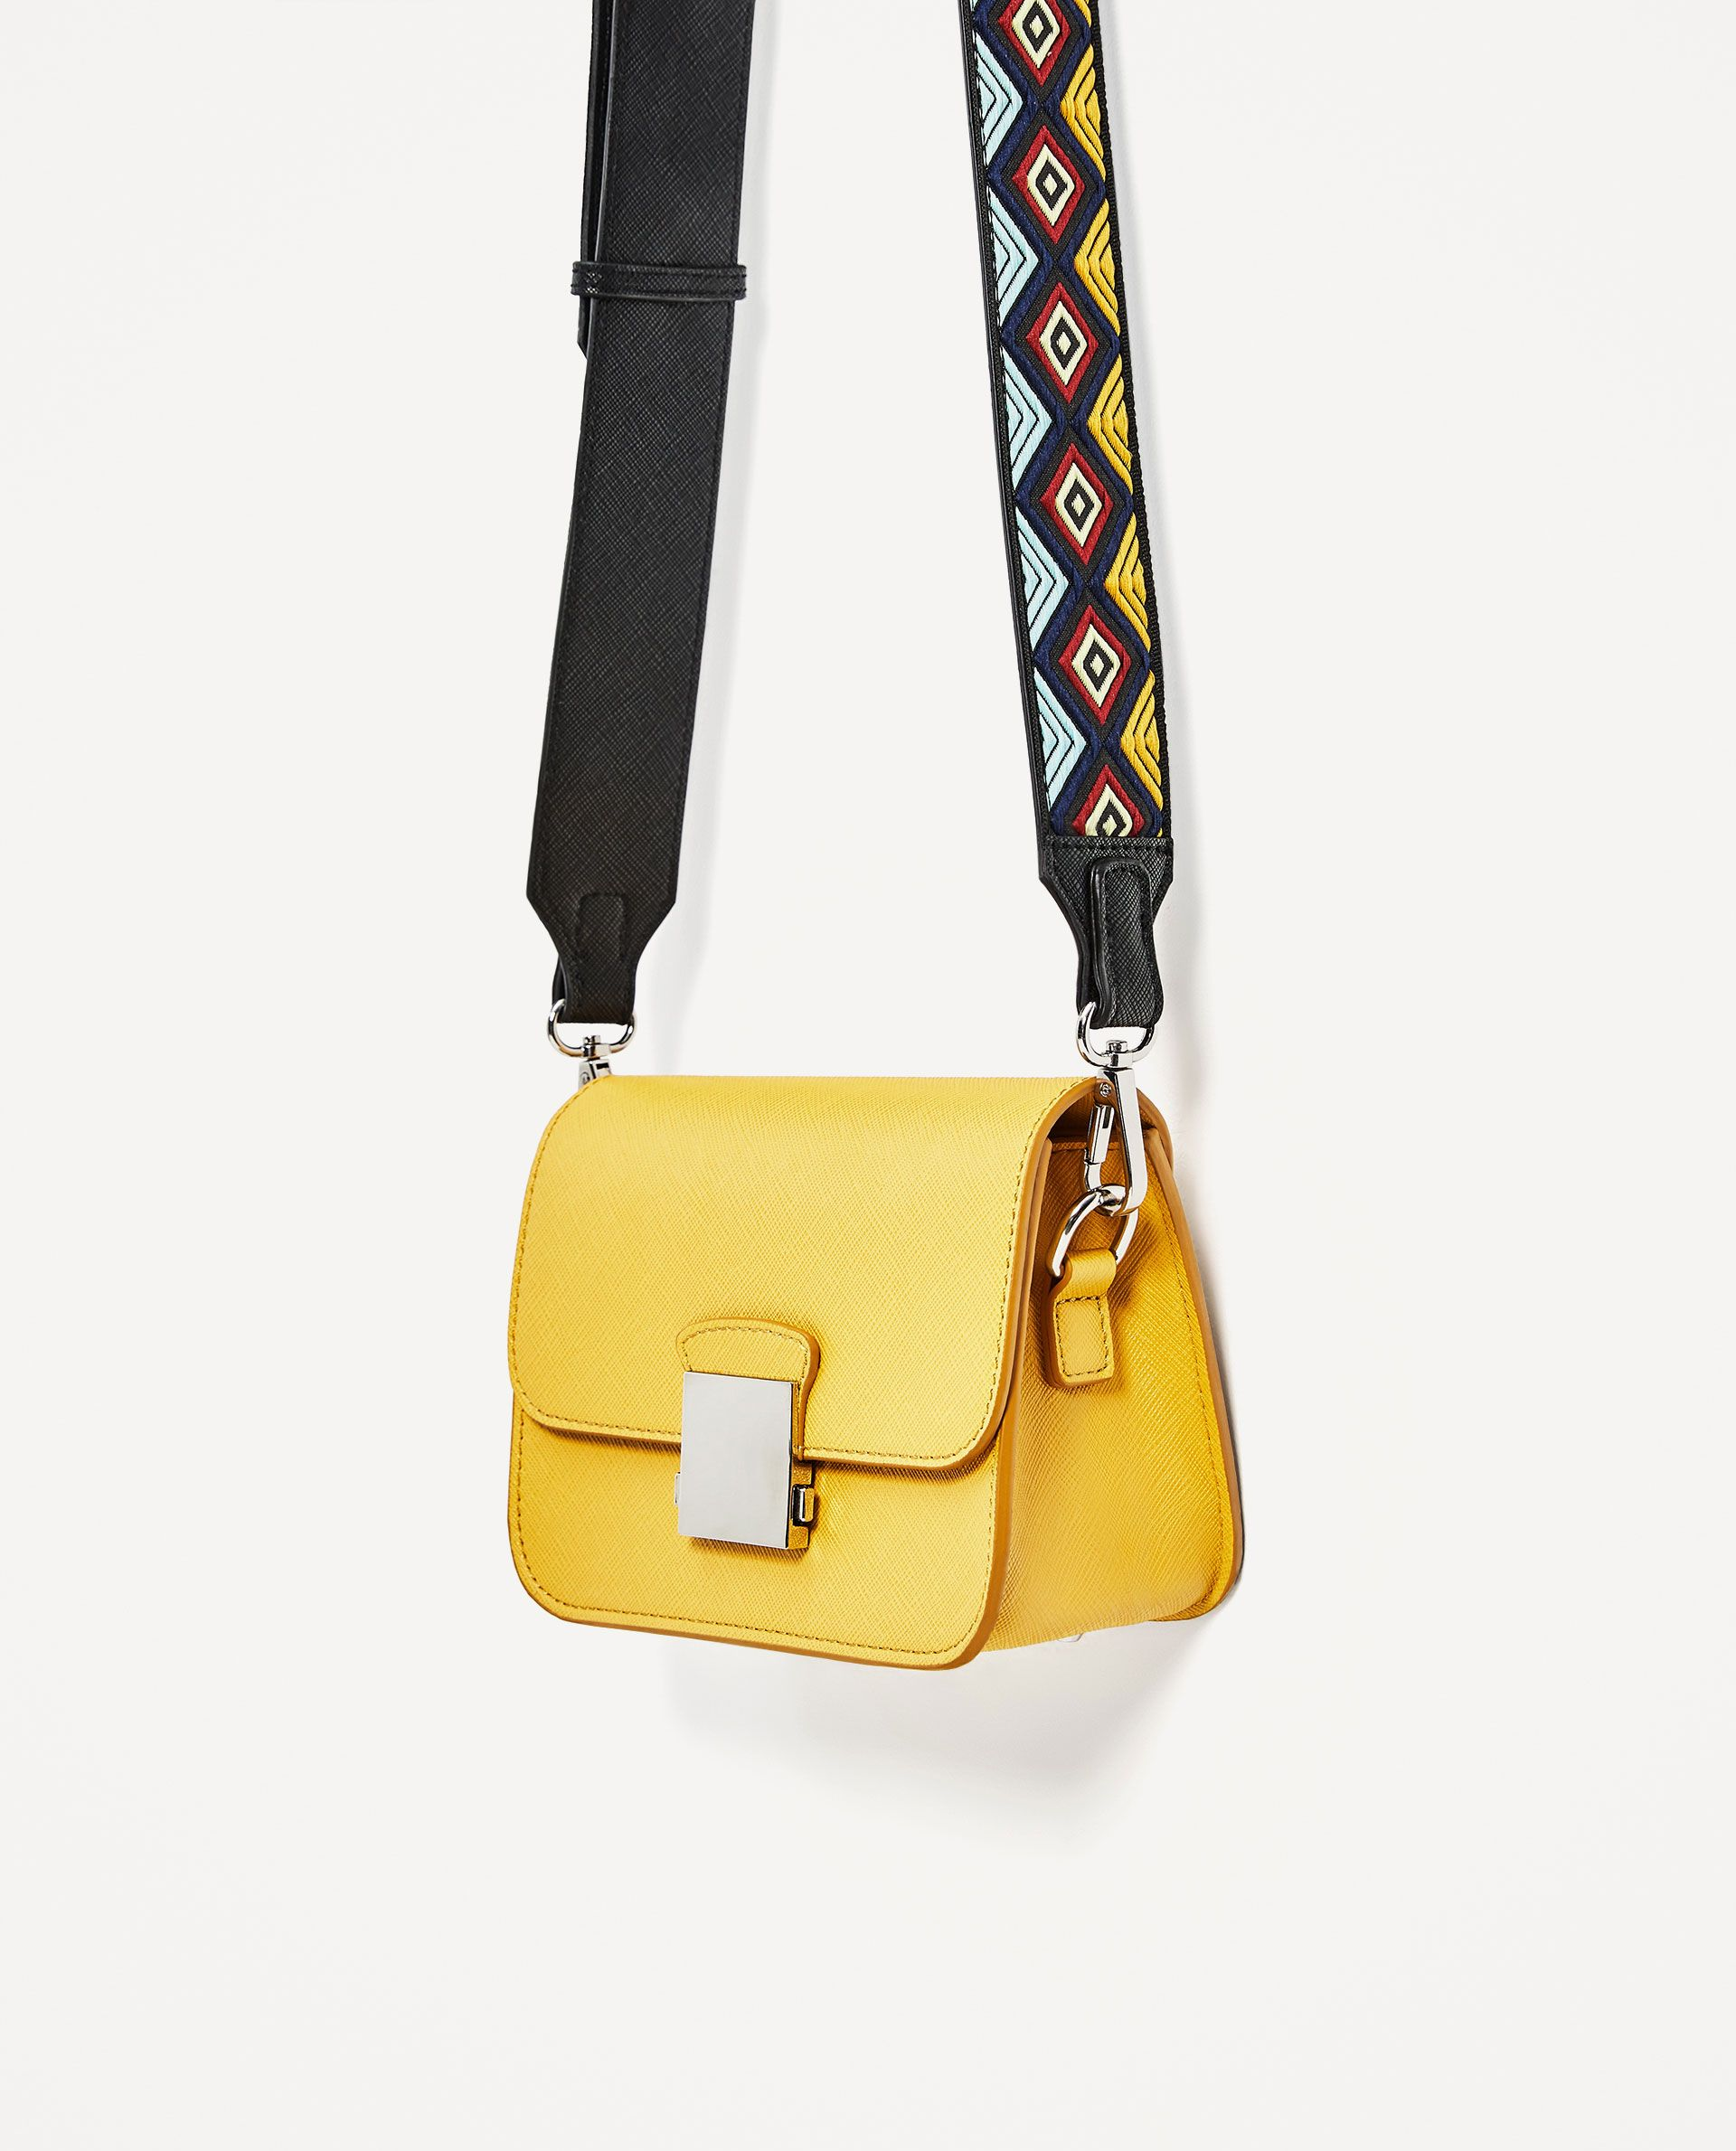 5a7c63f8fbcbd Image 4 of CROSSBODY BAG WITH MULTICOLOURED STRAP from Zara Bags 2017